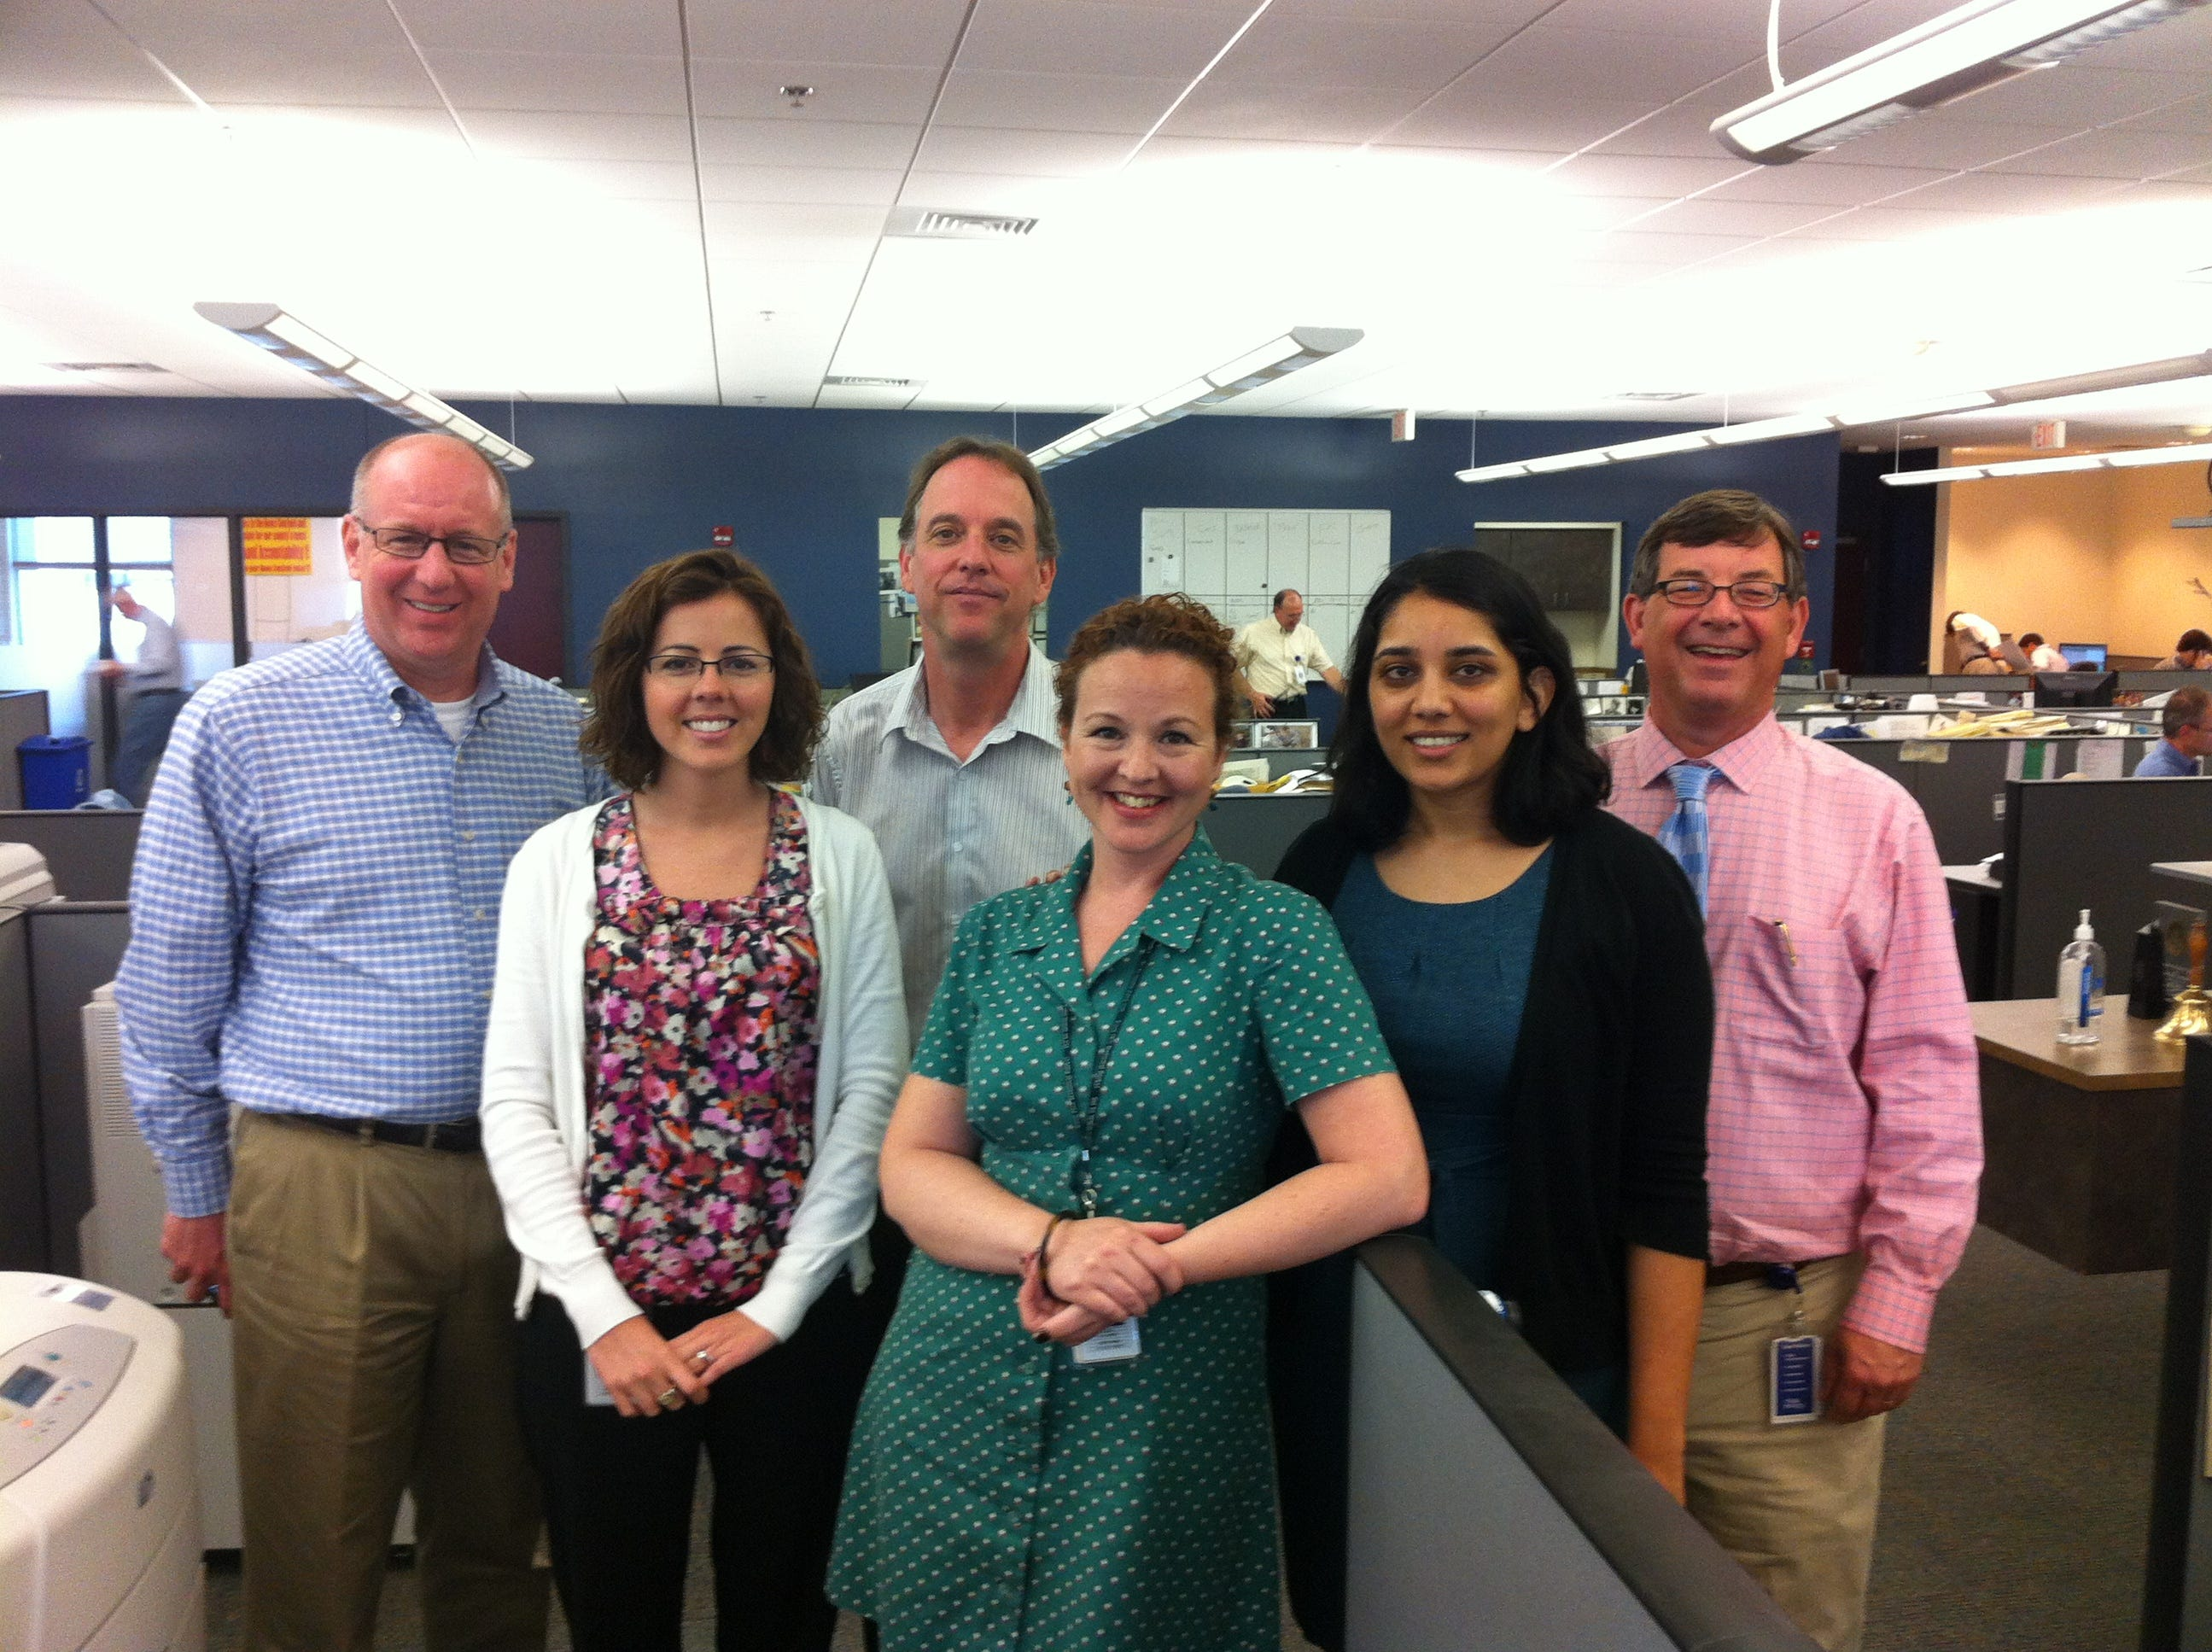 Members of the Scripps corporate team from Cincinnati, Ohio, visited the Knoxville News Sentinel on May 1 and May 2, 2012. They posed for a photo in the newsroom with the Web staff. From left, Chip Mahaney, Lauren Spuhler, Bruce McLean, Erin Chapin, Jigsha Desai and Jack Lail.